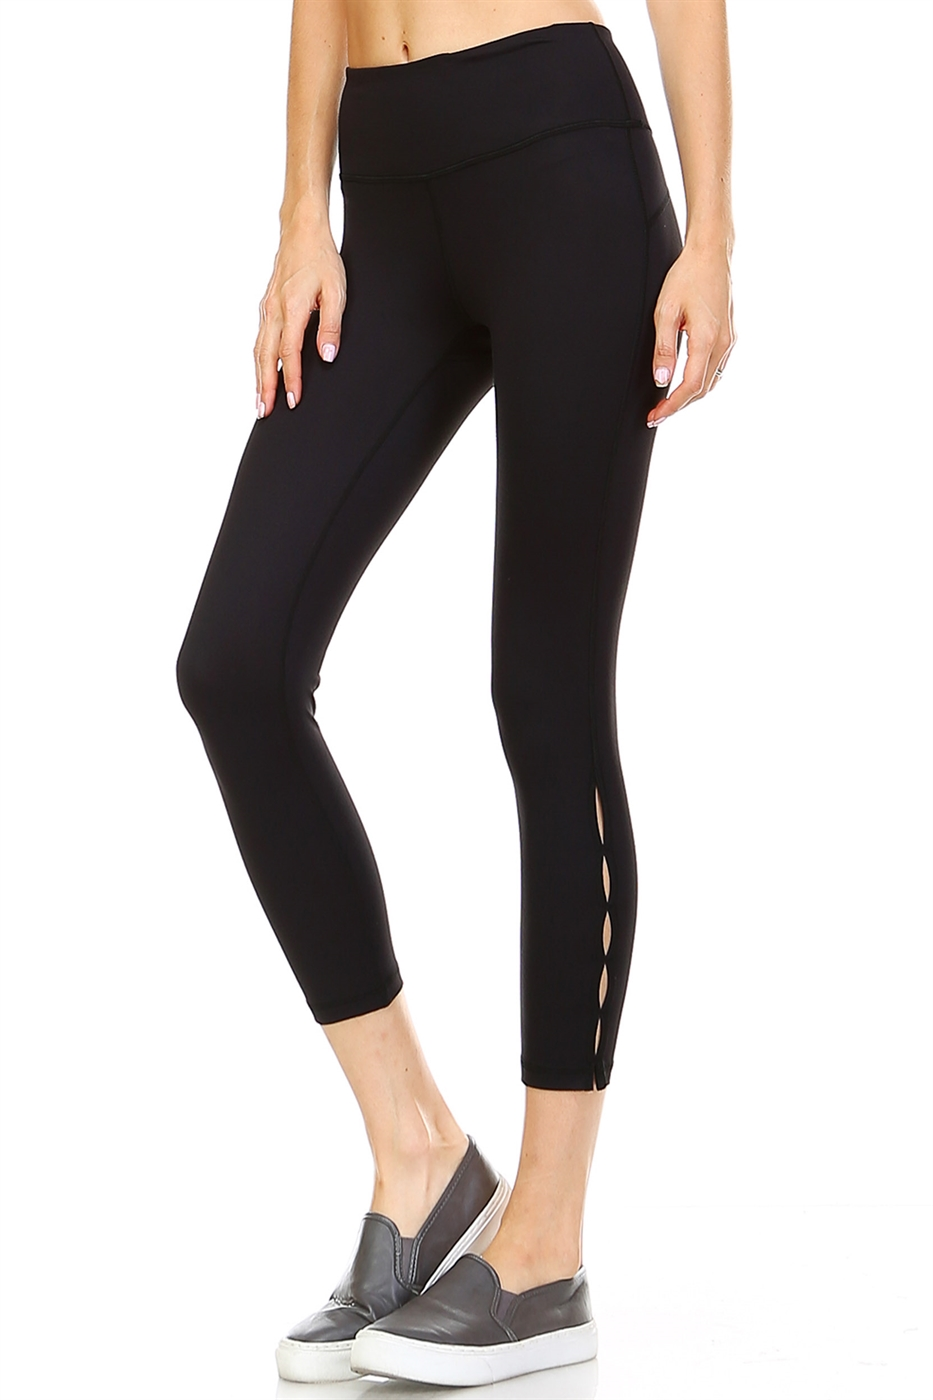 CUTOUT ACCENTS LEGGINGS - orangeshine.com